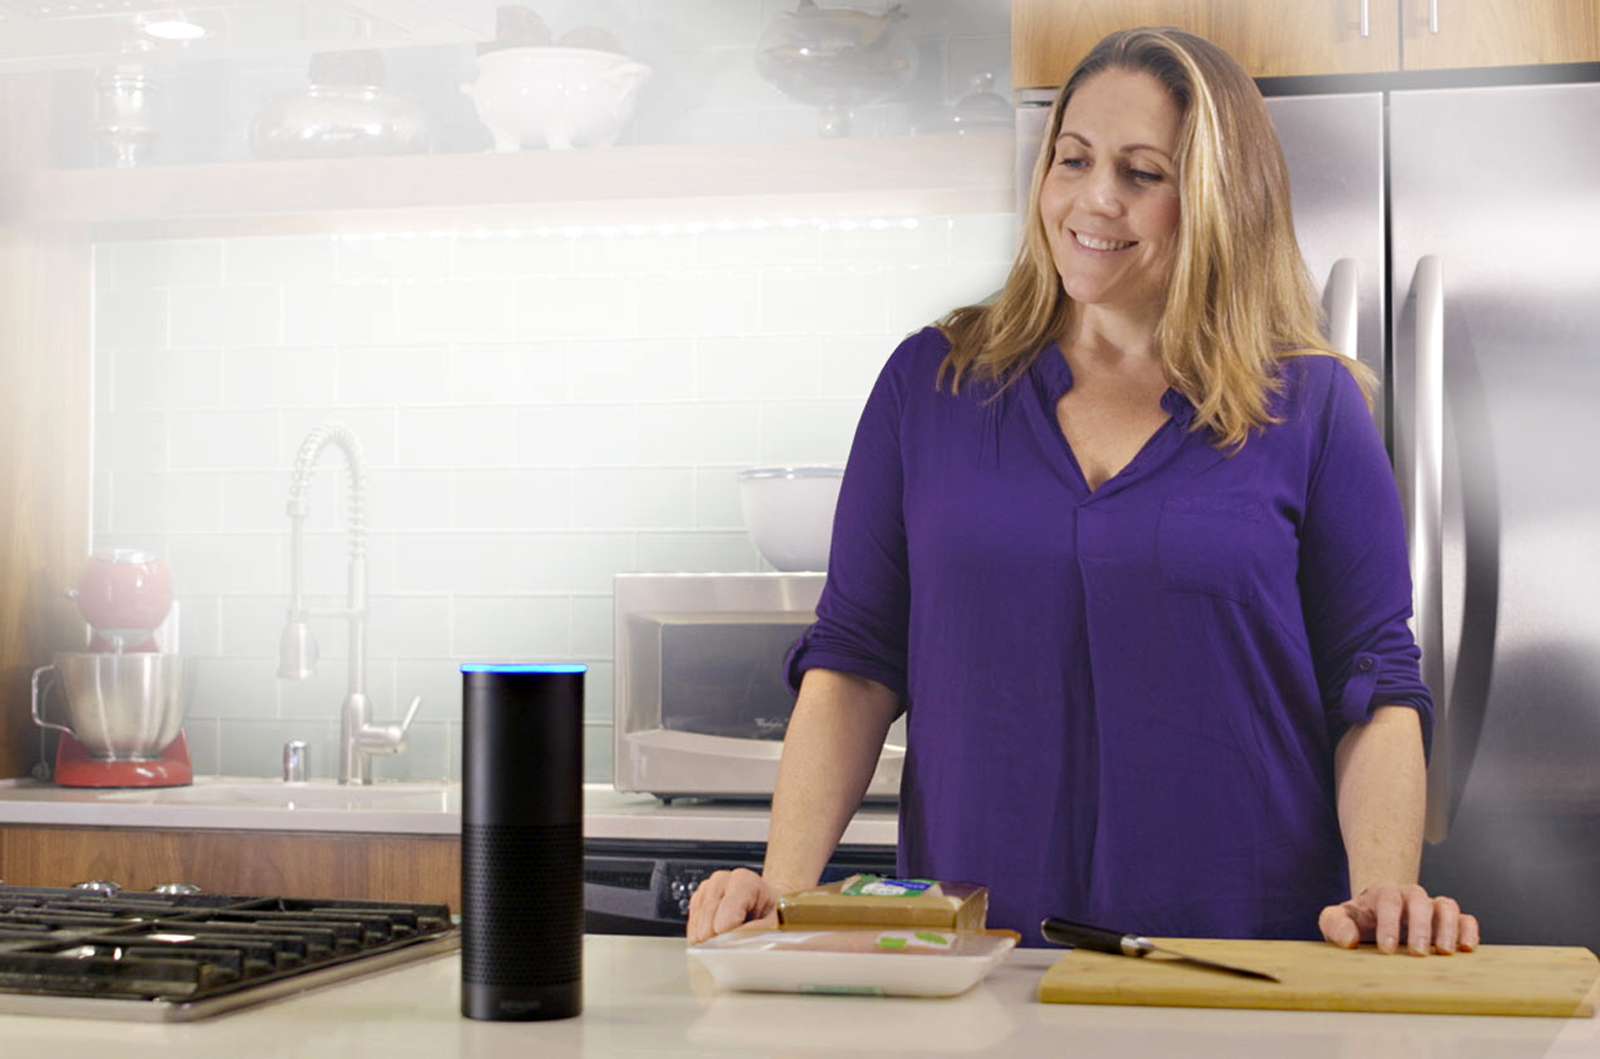 Amazon Echo Now Talks You Through Recipes